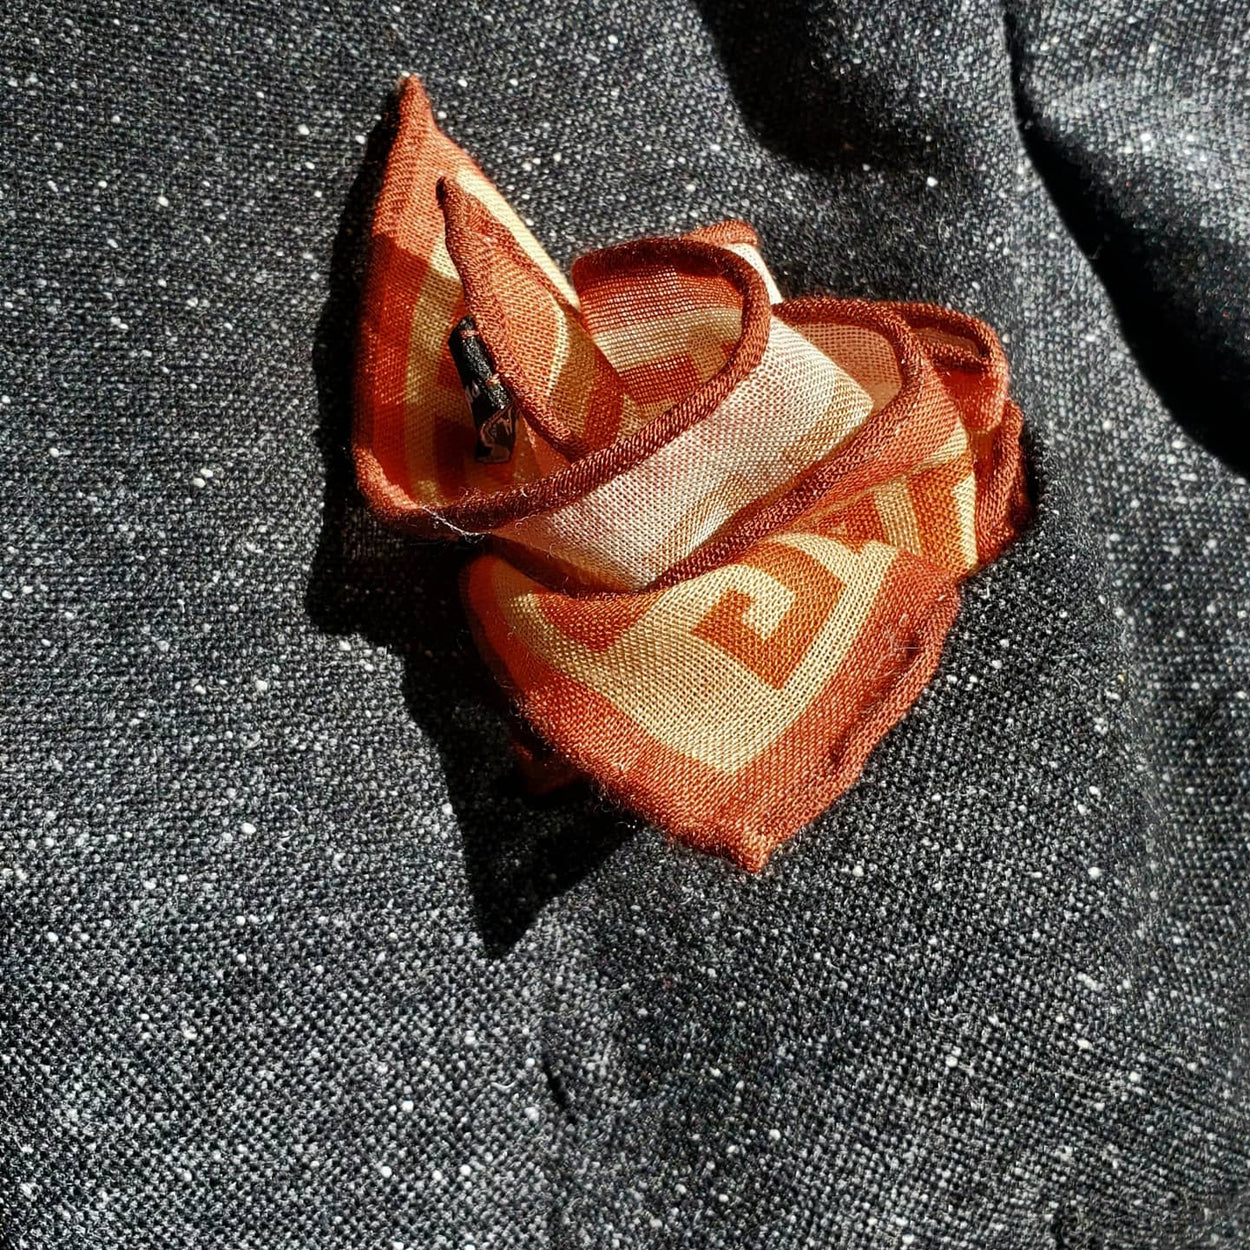 Minotaur Greek Key Wool Silk Neckerchief Pocket Square - Orange - X Of Pentacles